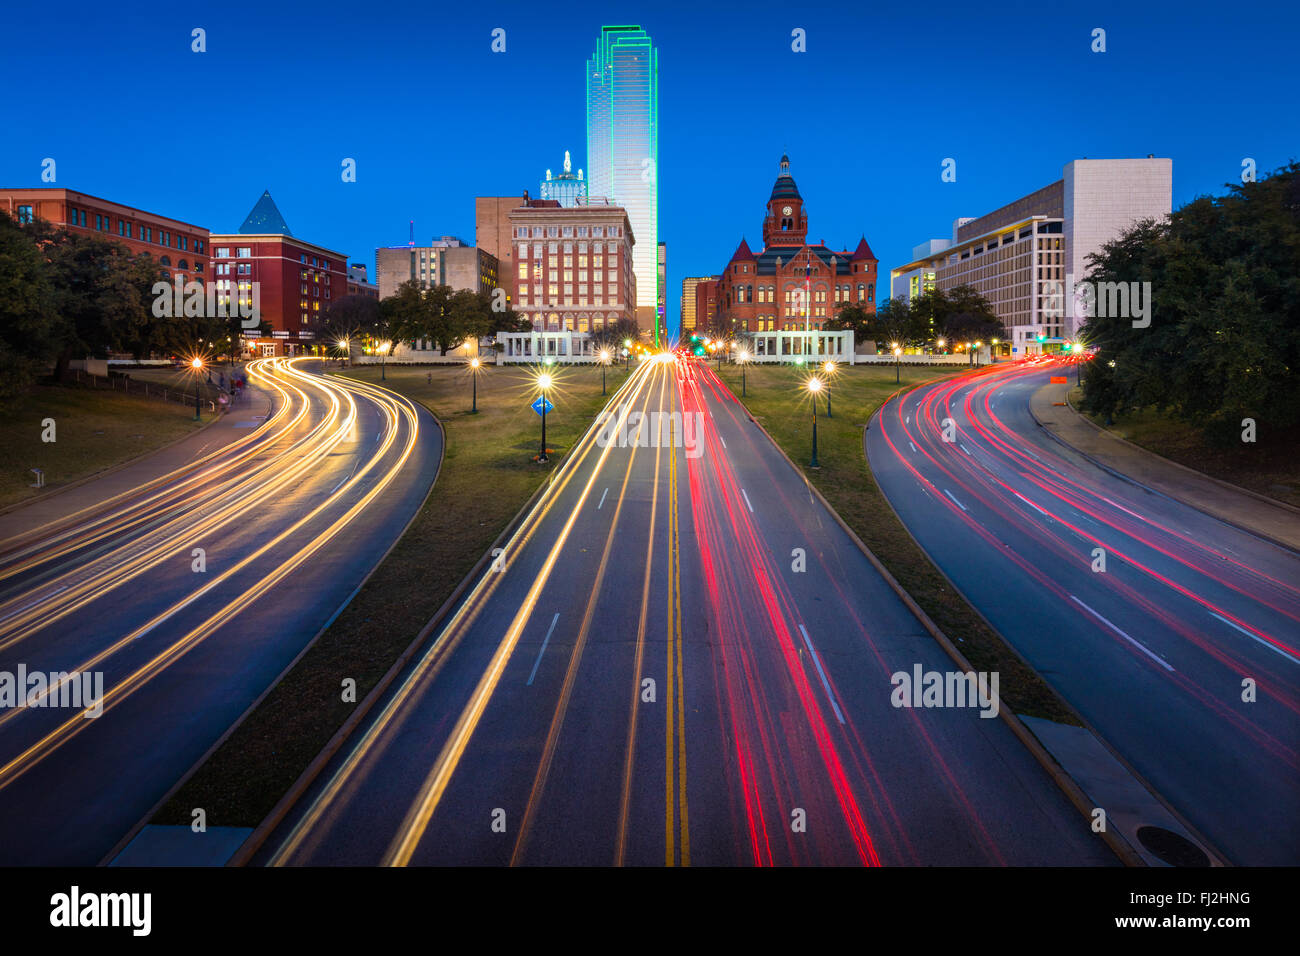 Dealey Plaza, in the historic West End district of downtown Dallas, Texas, is the location of the assassination - Stock Image